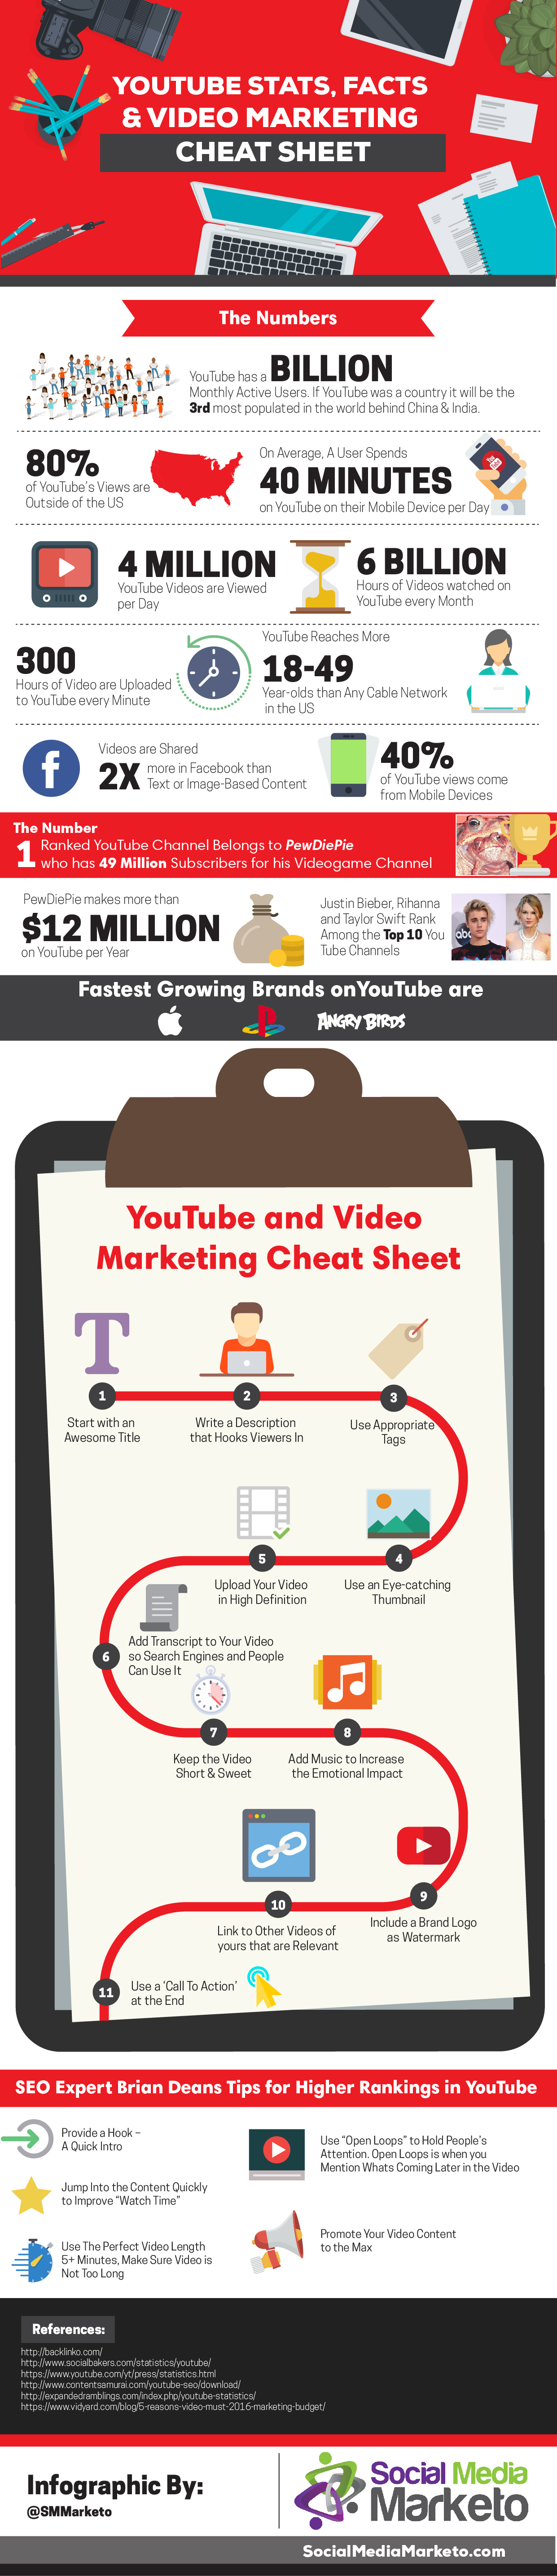 youtube-stats-facts-video-marketing-cheat-sheet-infographic